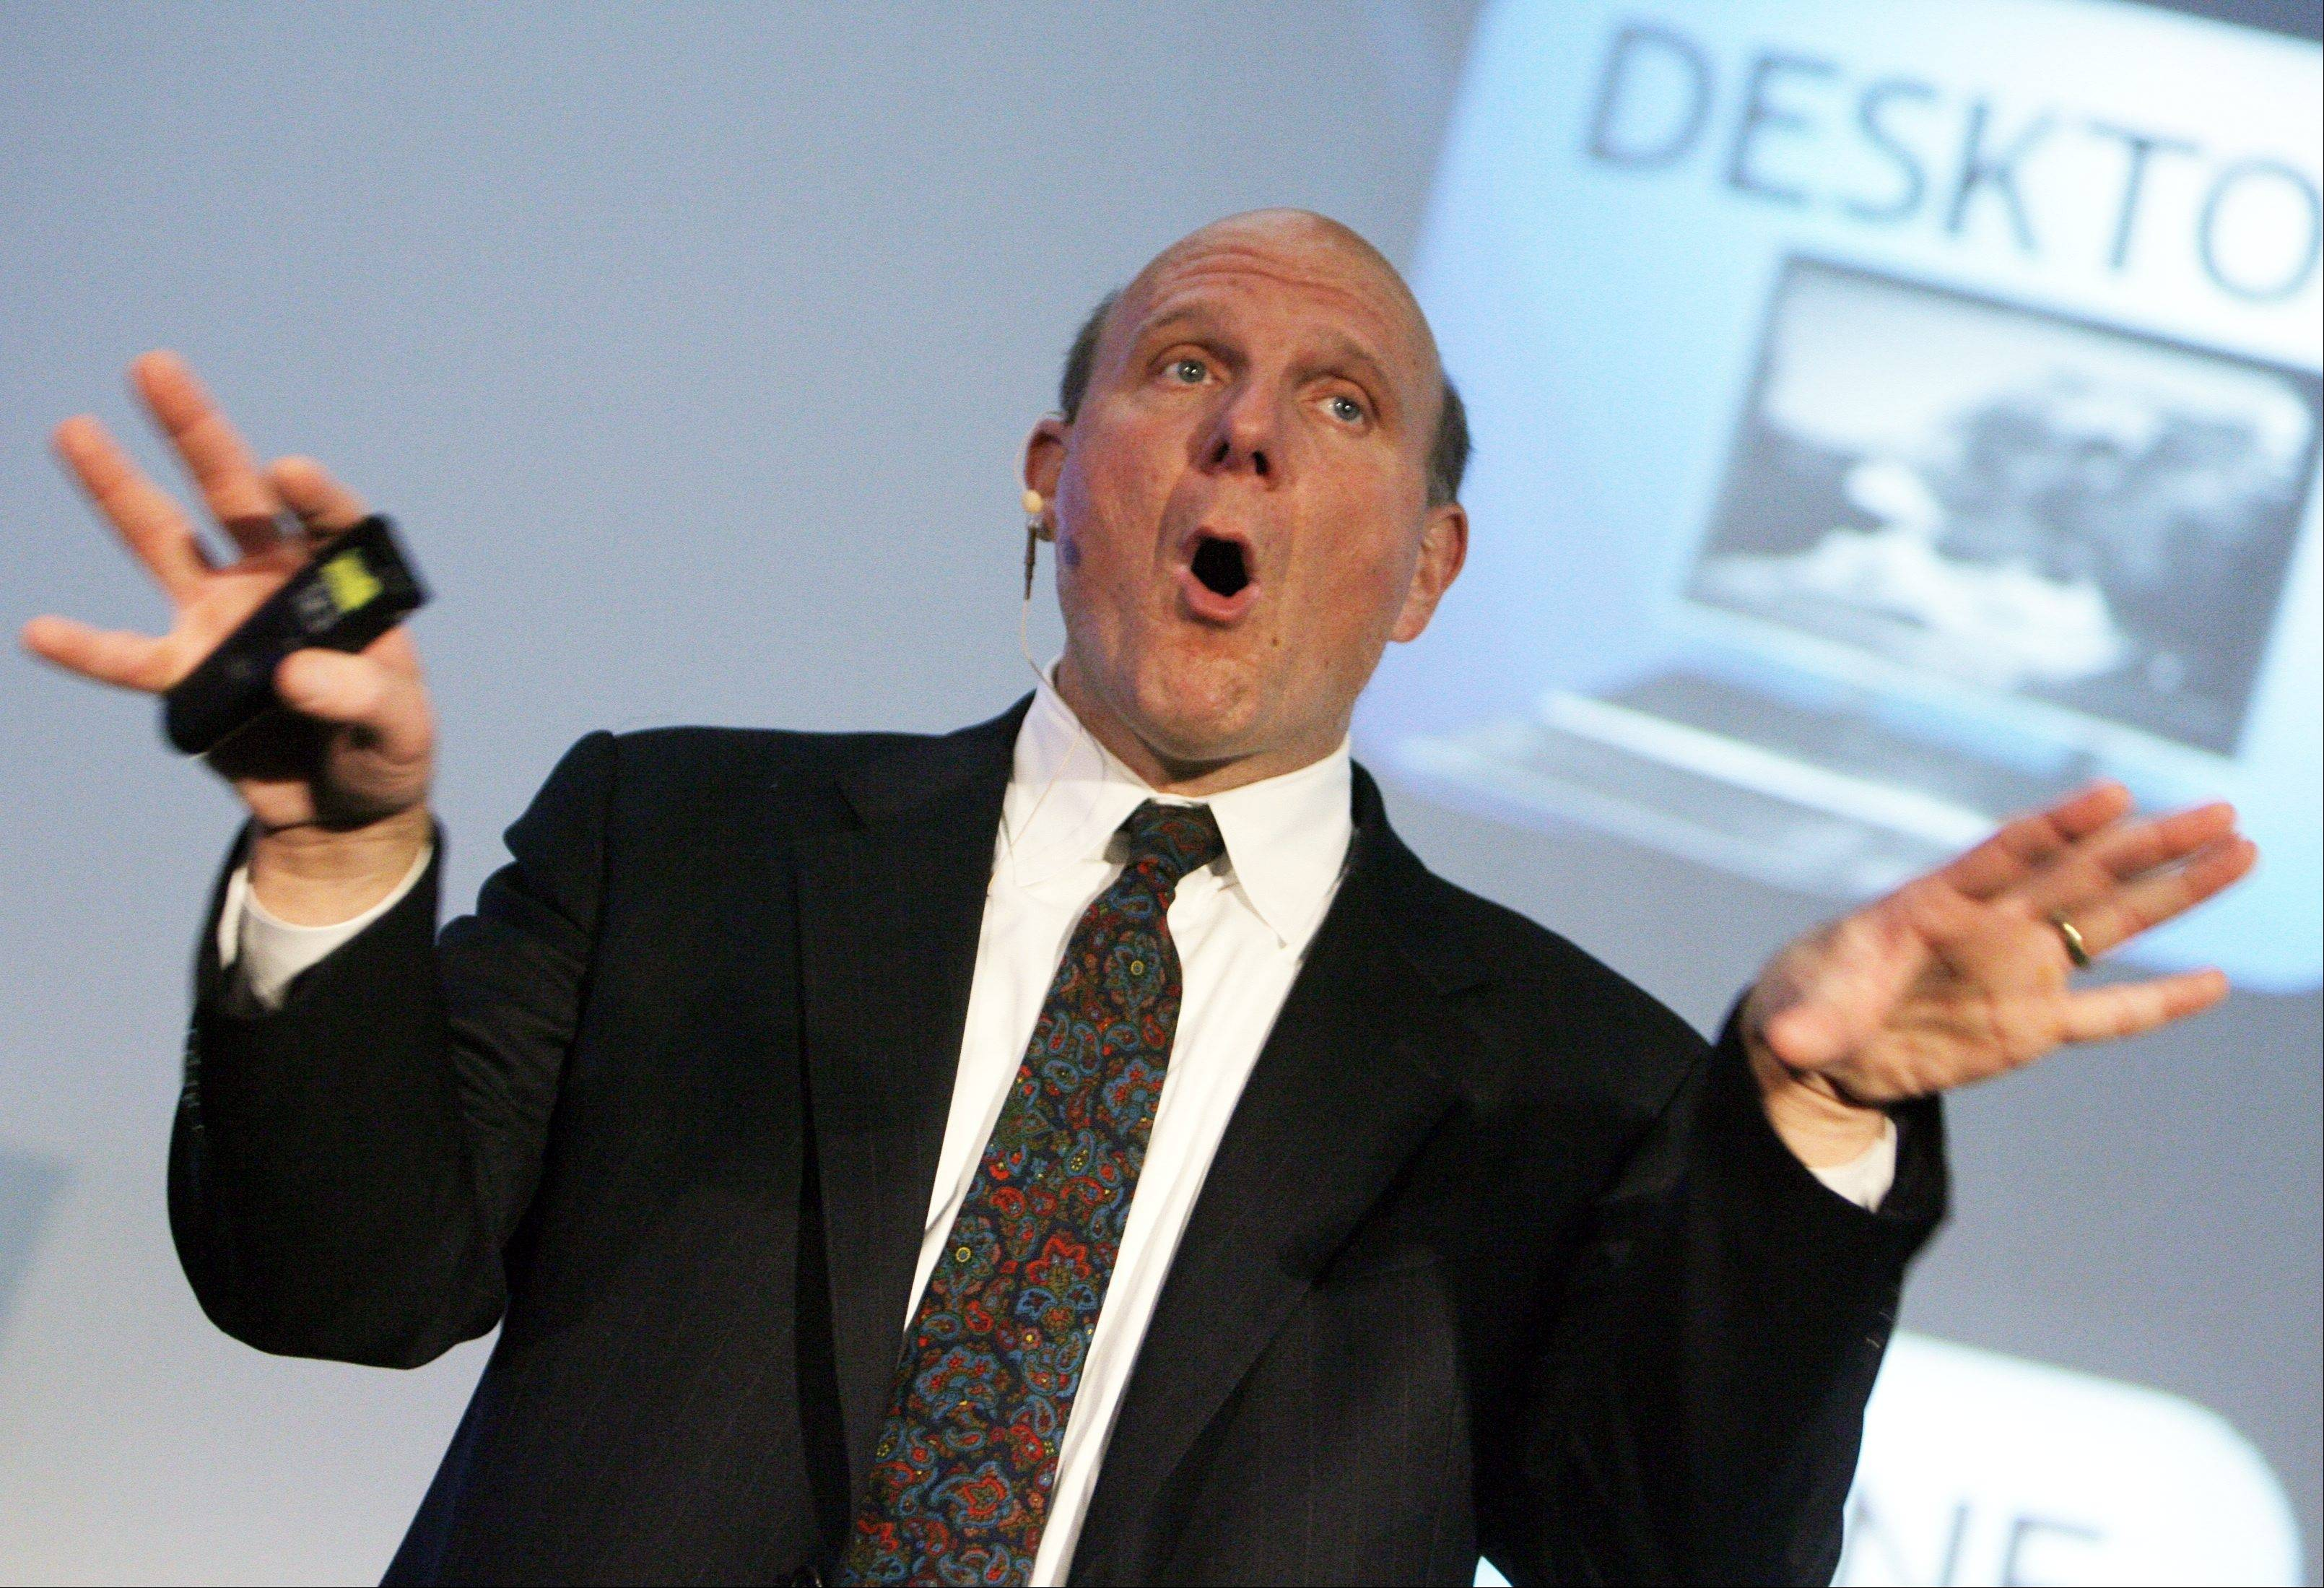 "Steve Ballmer, CEO Microsoft, speaks about the ""Next Generation Internet"" during a presentation earlier this month in Zurich, Switzerland. Ballmer can't afford to be wrong about Windows 8. If the dramatic overhaul of the Windows operating system flops, it will reinforce perceptions that Microsoft is falling behind other technology giants as the world moves on to smartphones, tablets and other sleek devices from Apple, Google and Amazon."